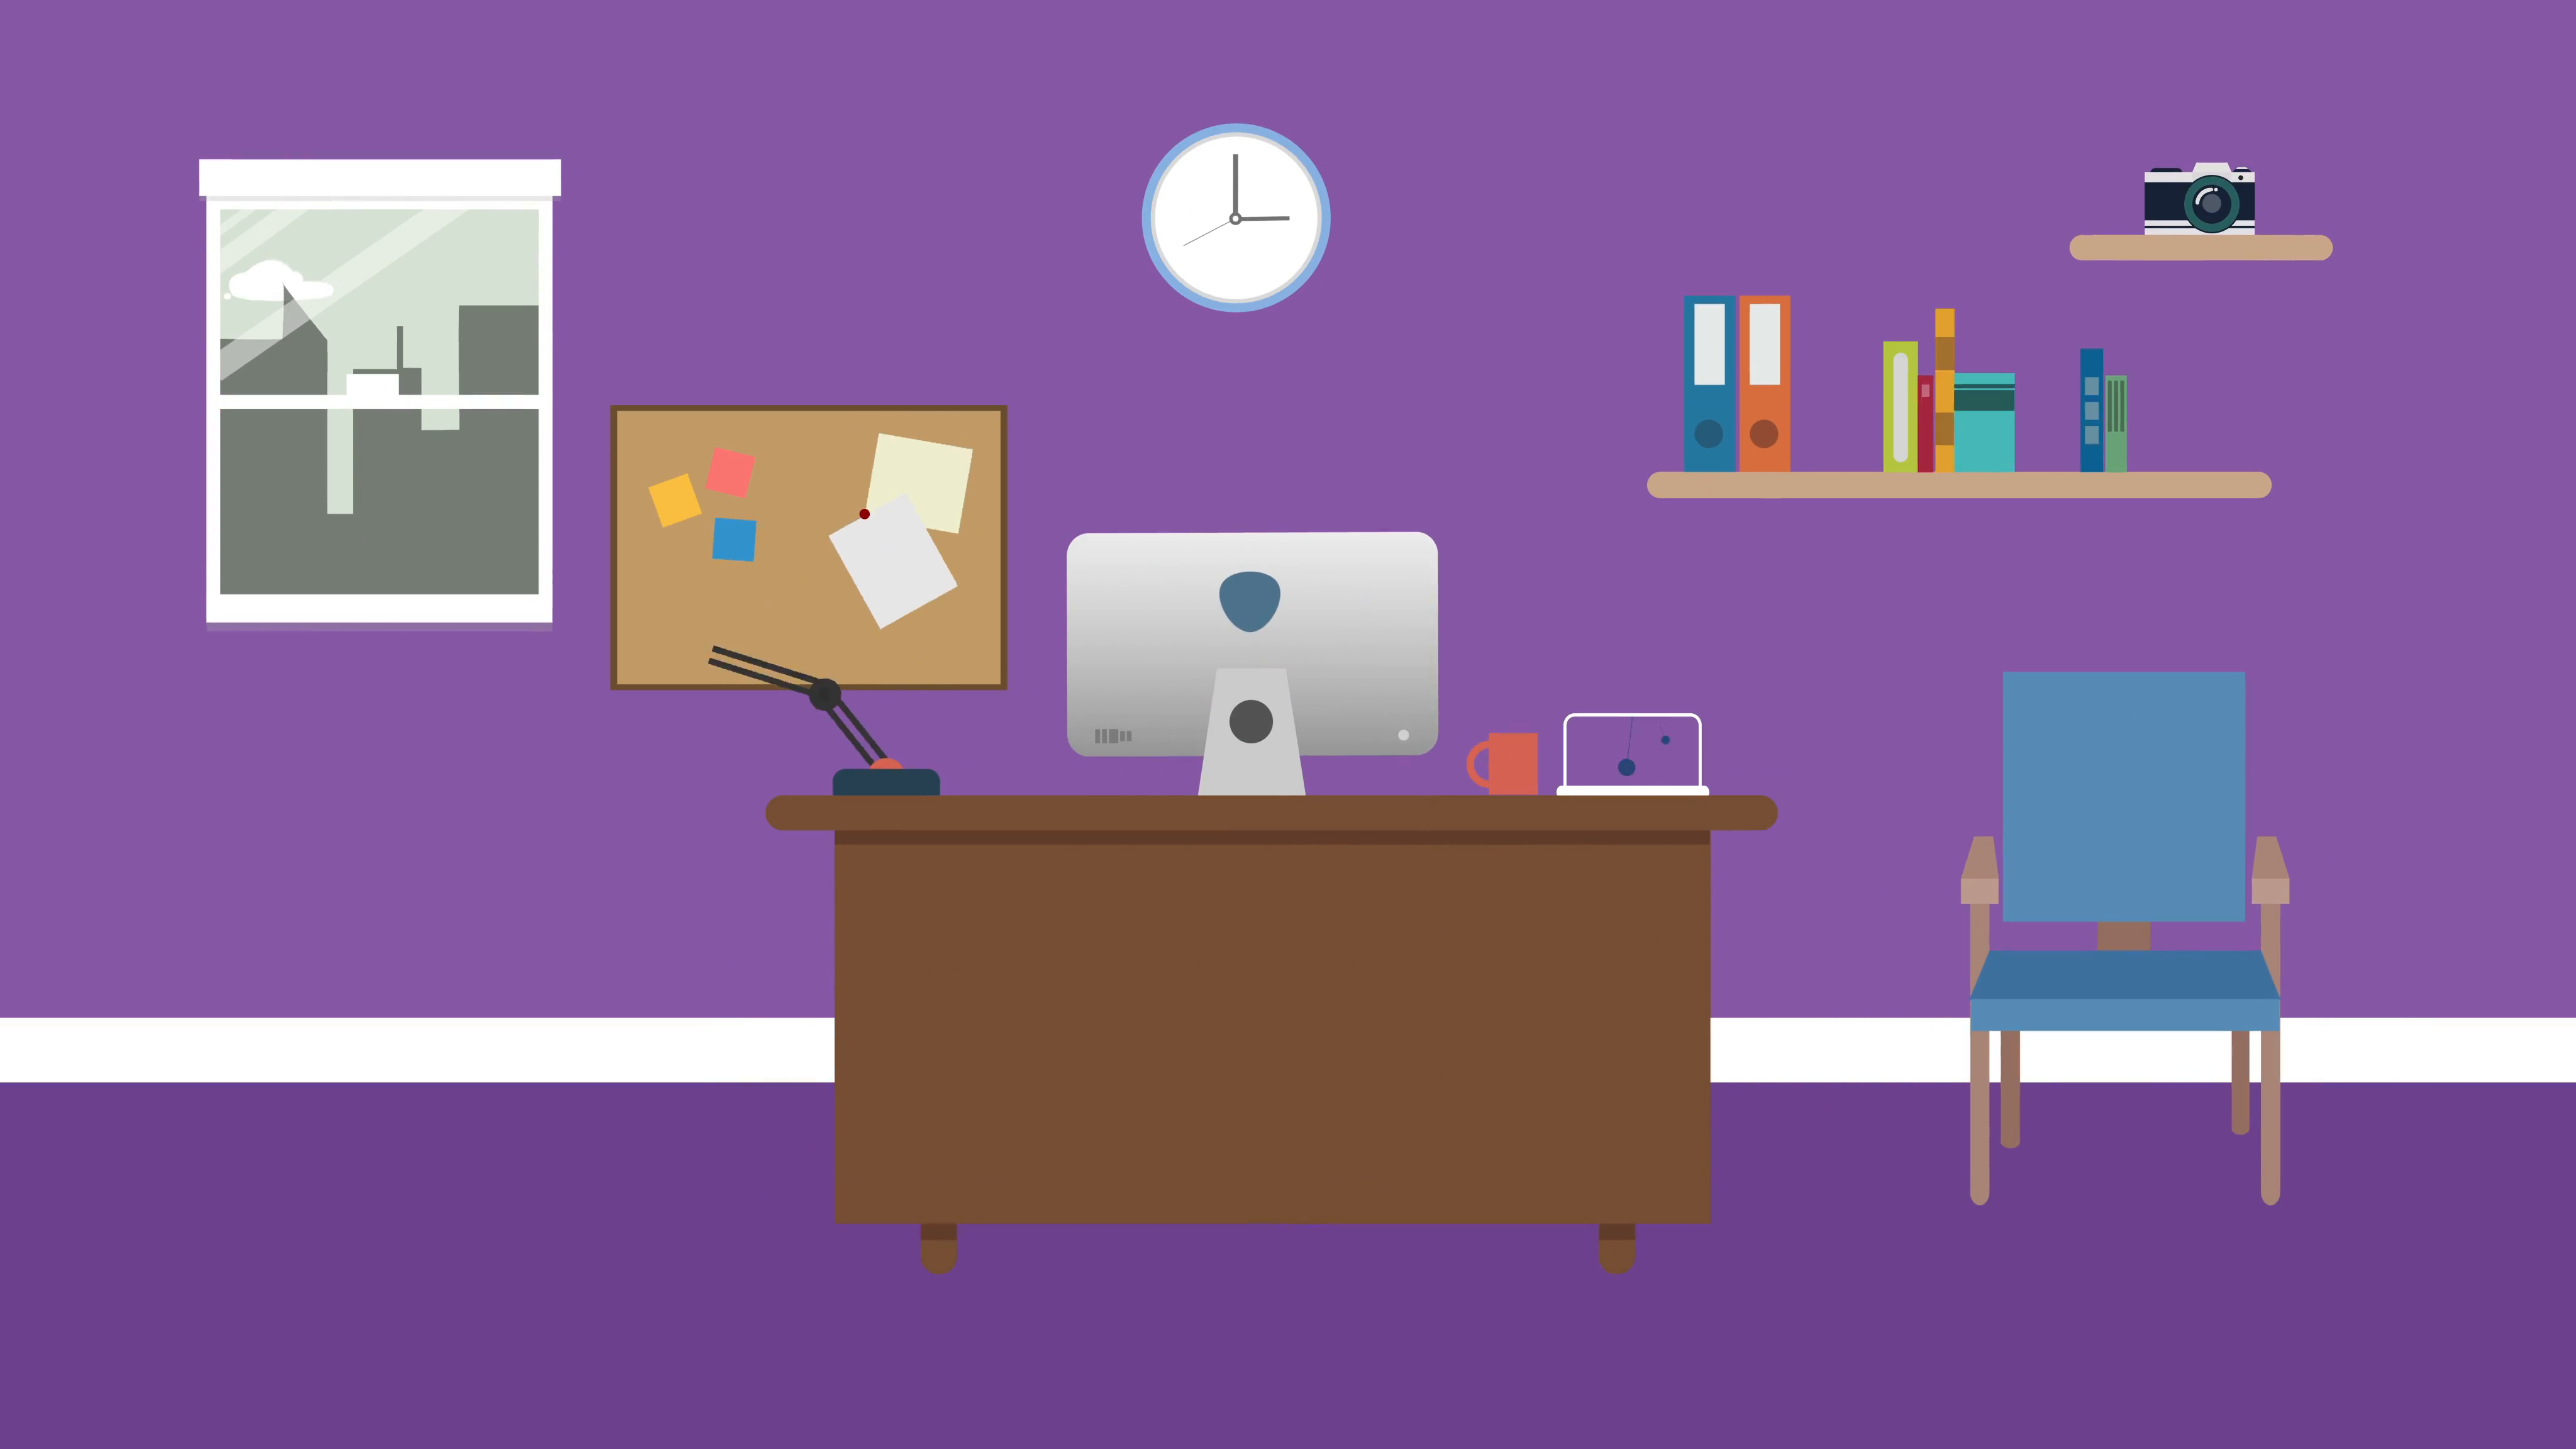 4096x2304 Cartoon Modern Colorful Office Animation With Space For Your Text